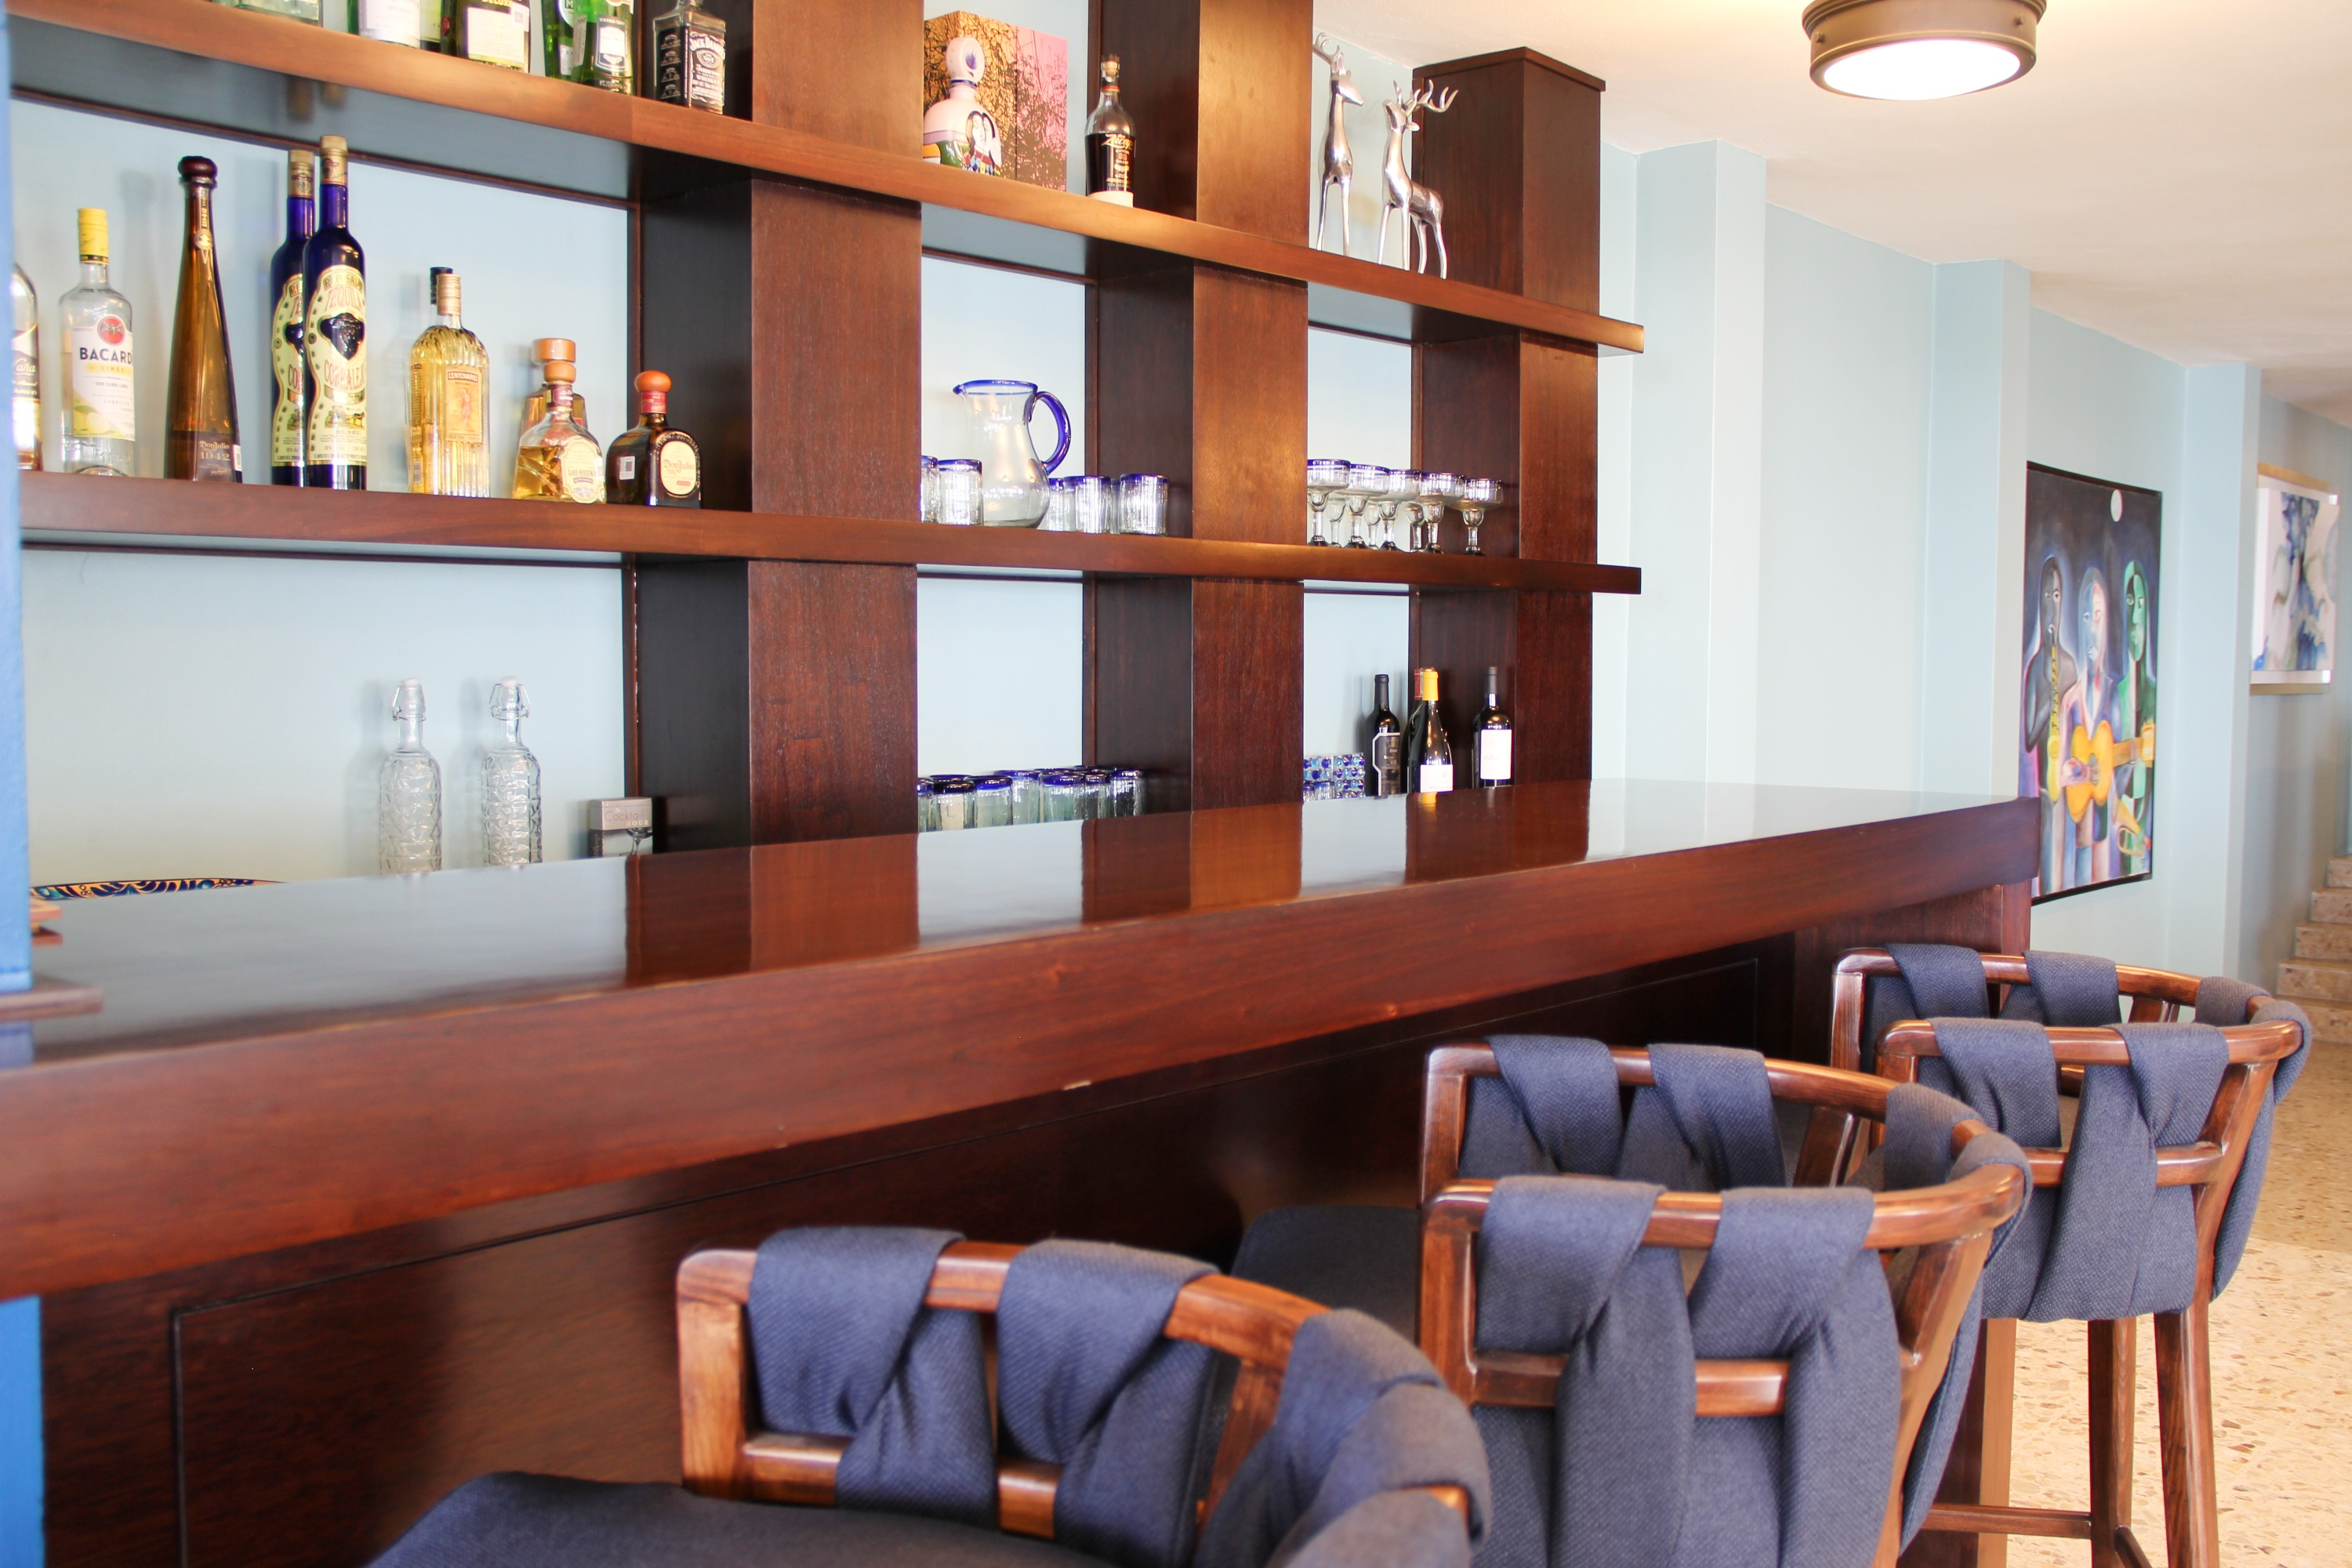 Bar seating for guests.